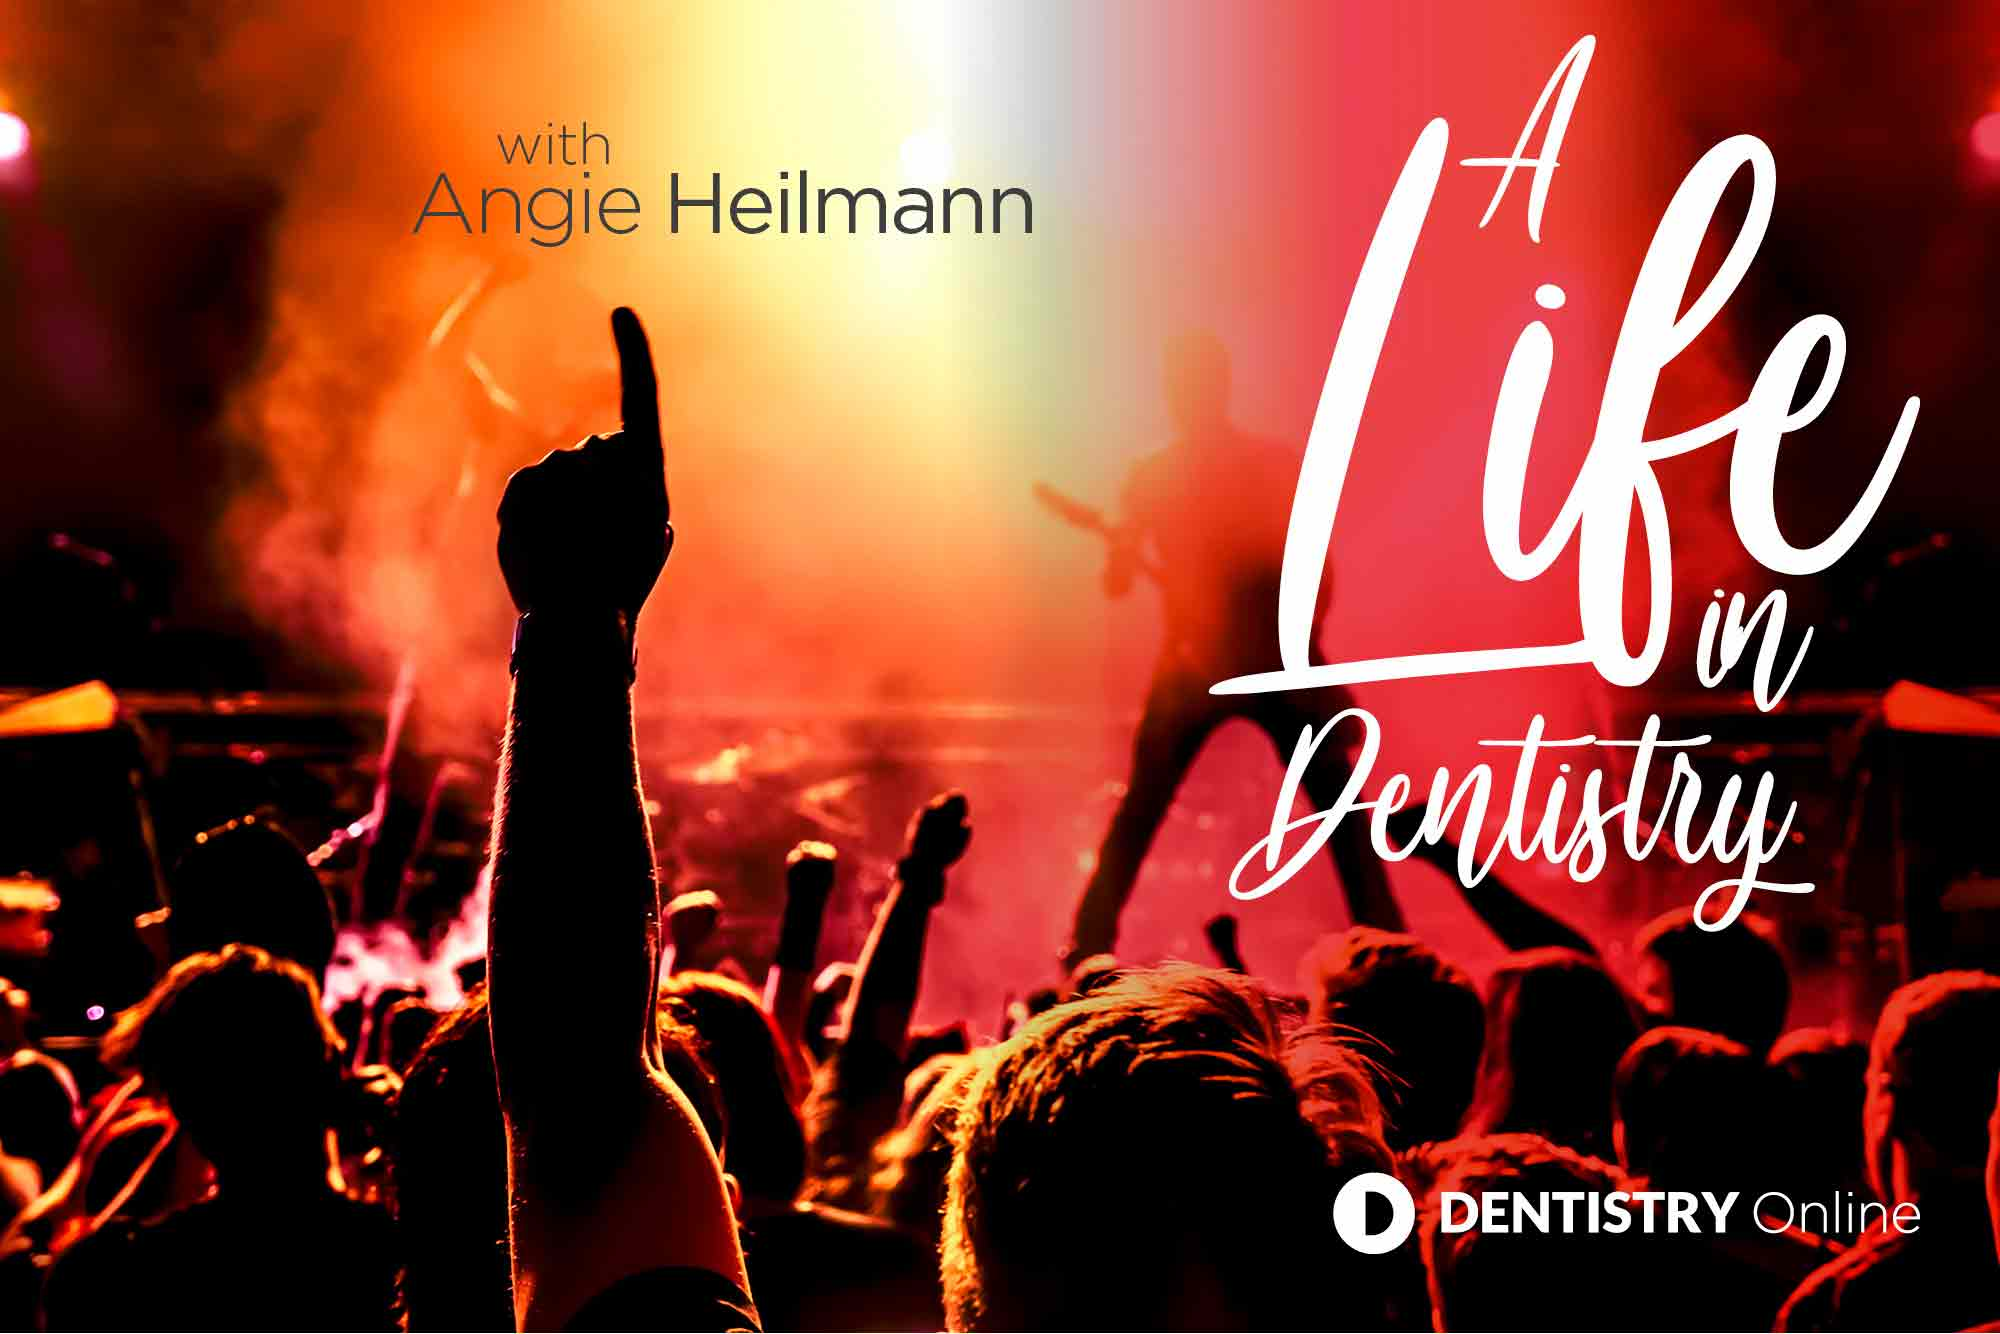 Angie Heilmann talks about her journey into dental nursing, touring with bands and falling down the stairs before receiving her MBE